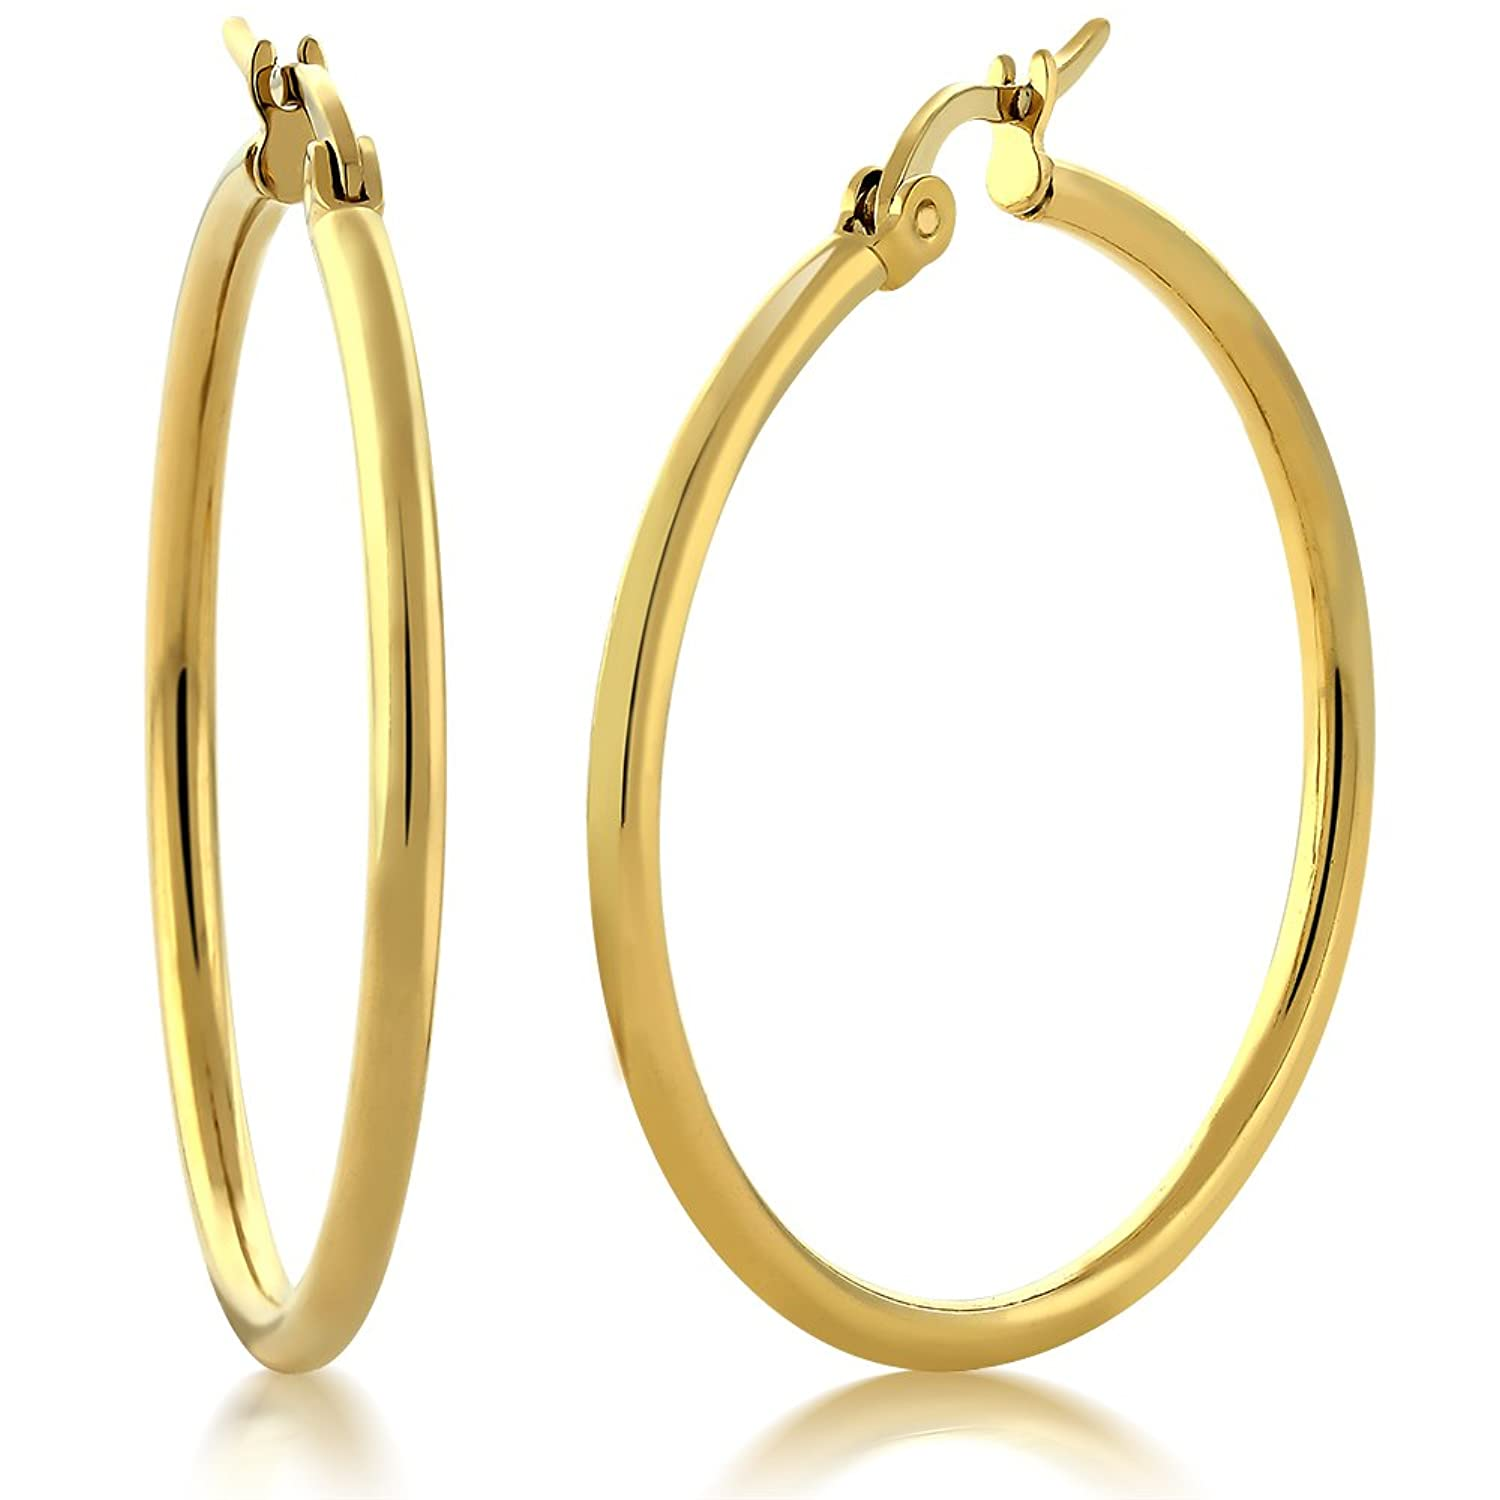 el inches tube goldfilled jewelry brass plated endless gold jewellery earrings hoopearrings bling hoop filled inch sgs